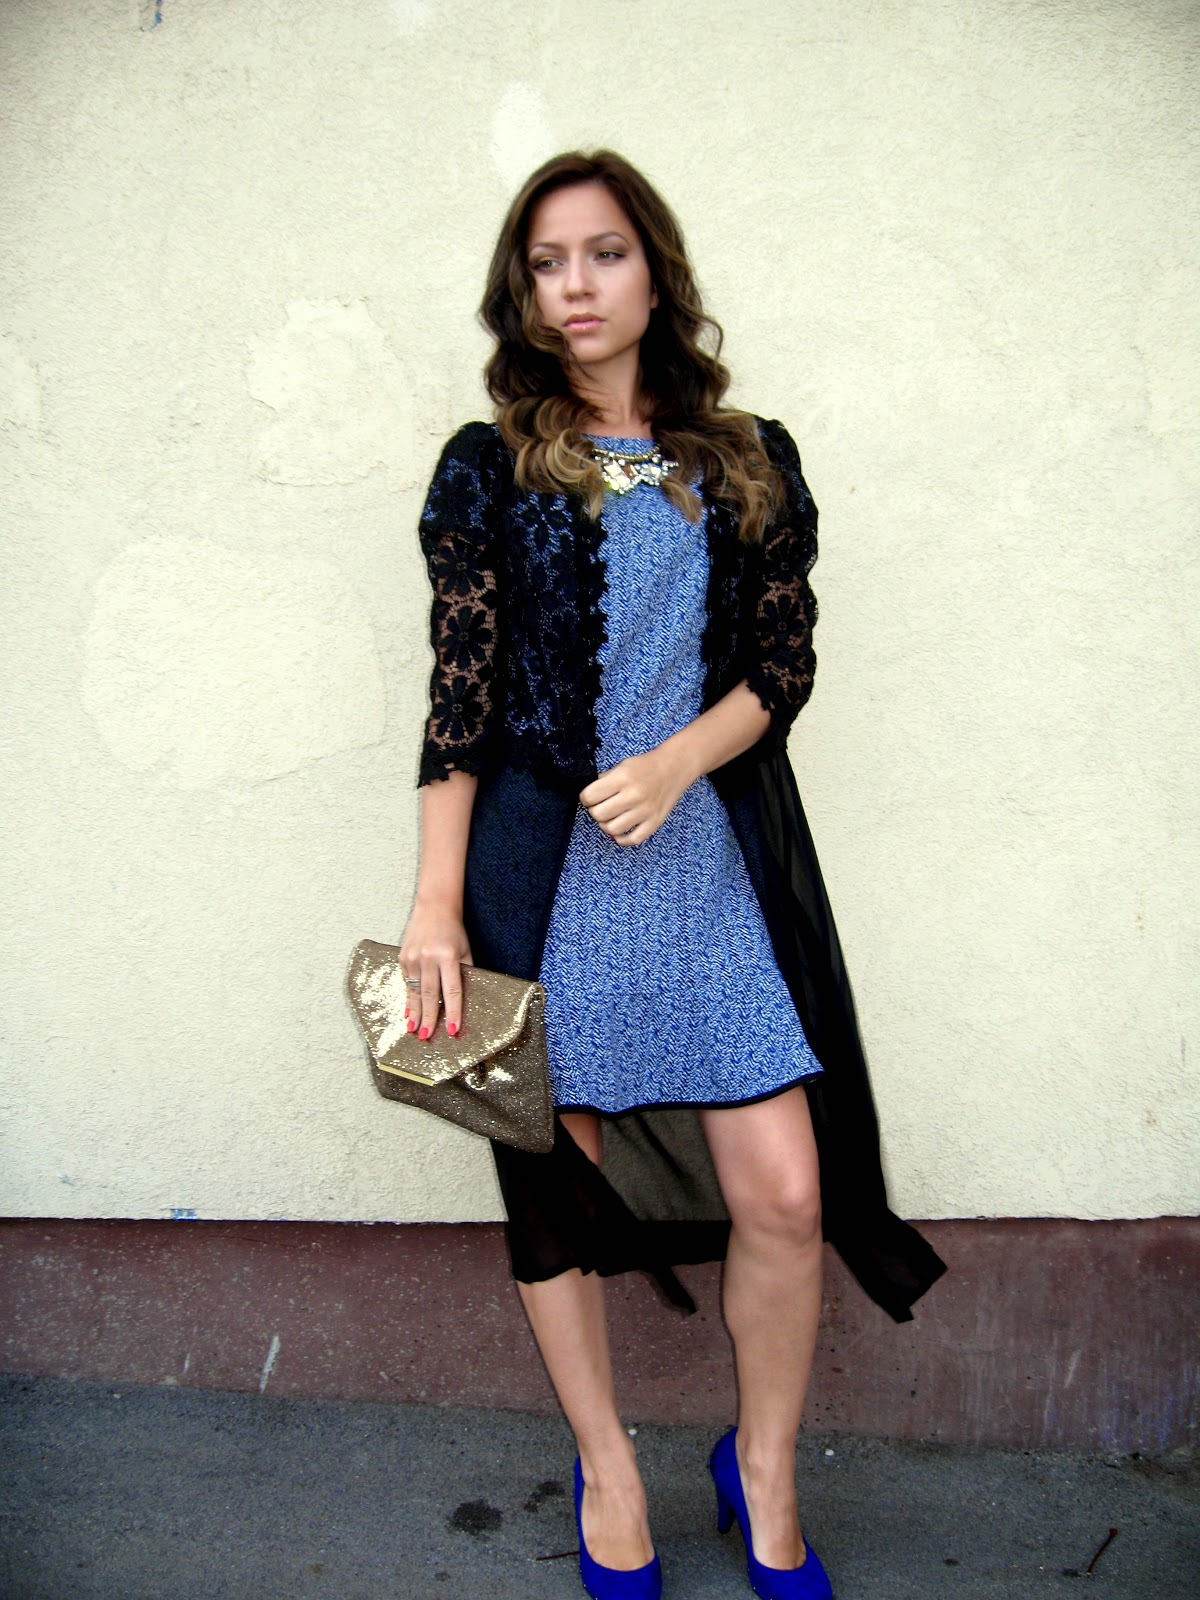 outfit, black crochet lace kimono, cobalt blue chevron print dress, cobalt blue pumps shoes heels, statement necklace, gold clutch, wedding outfit